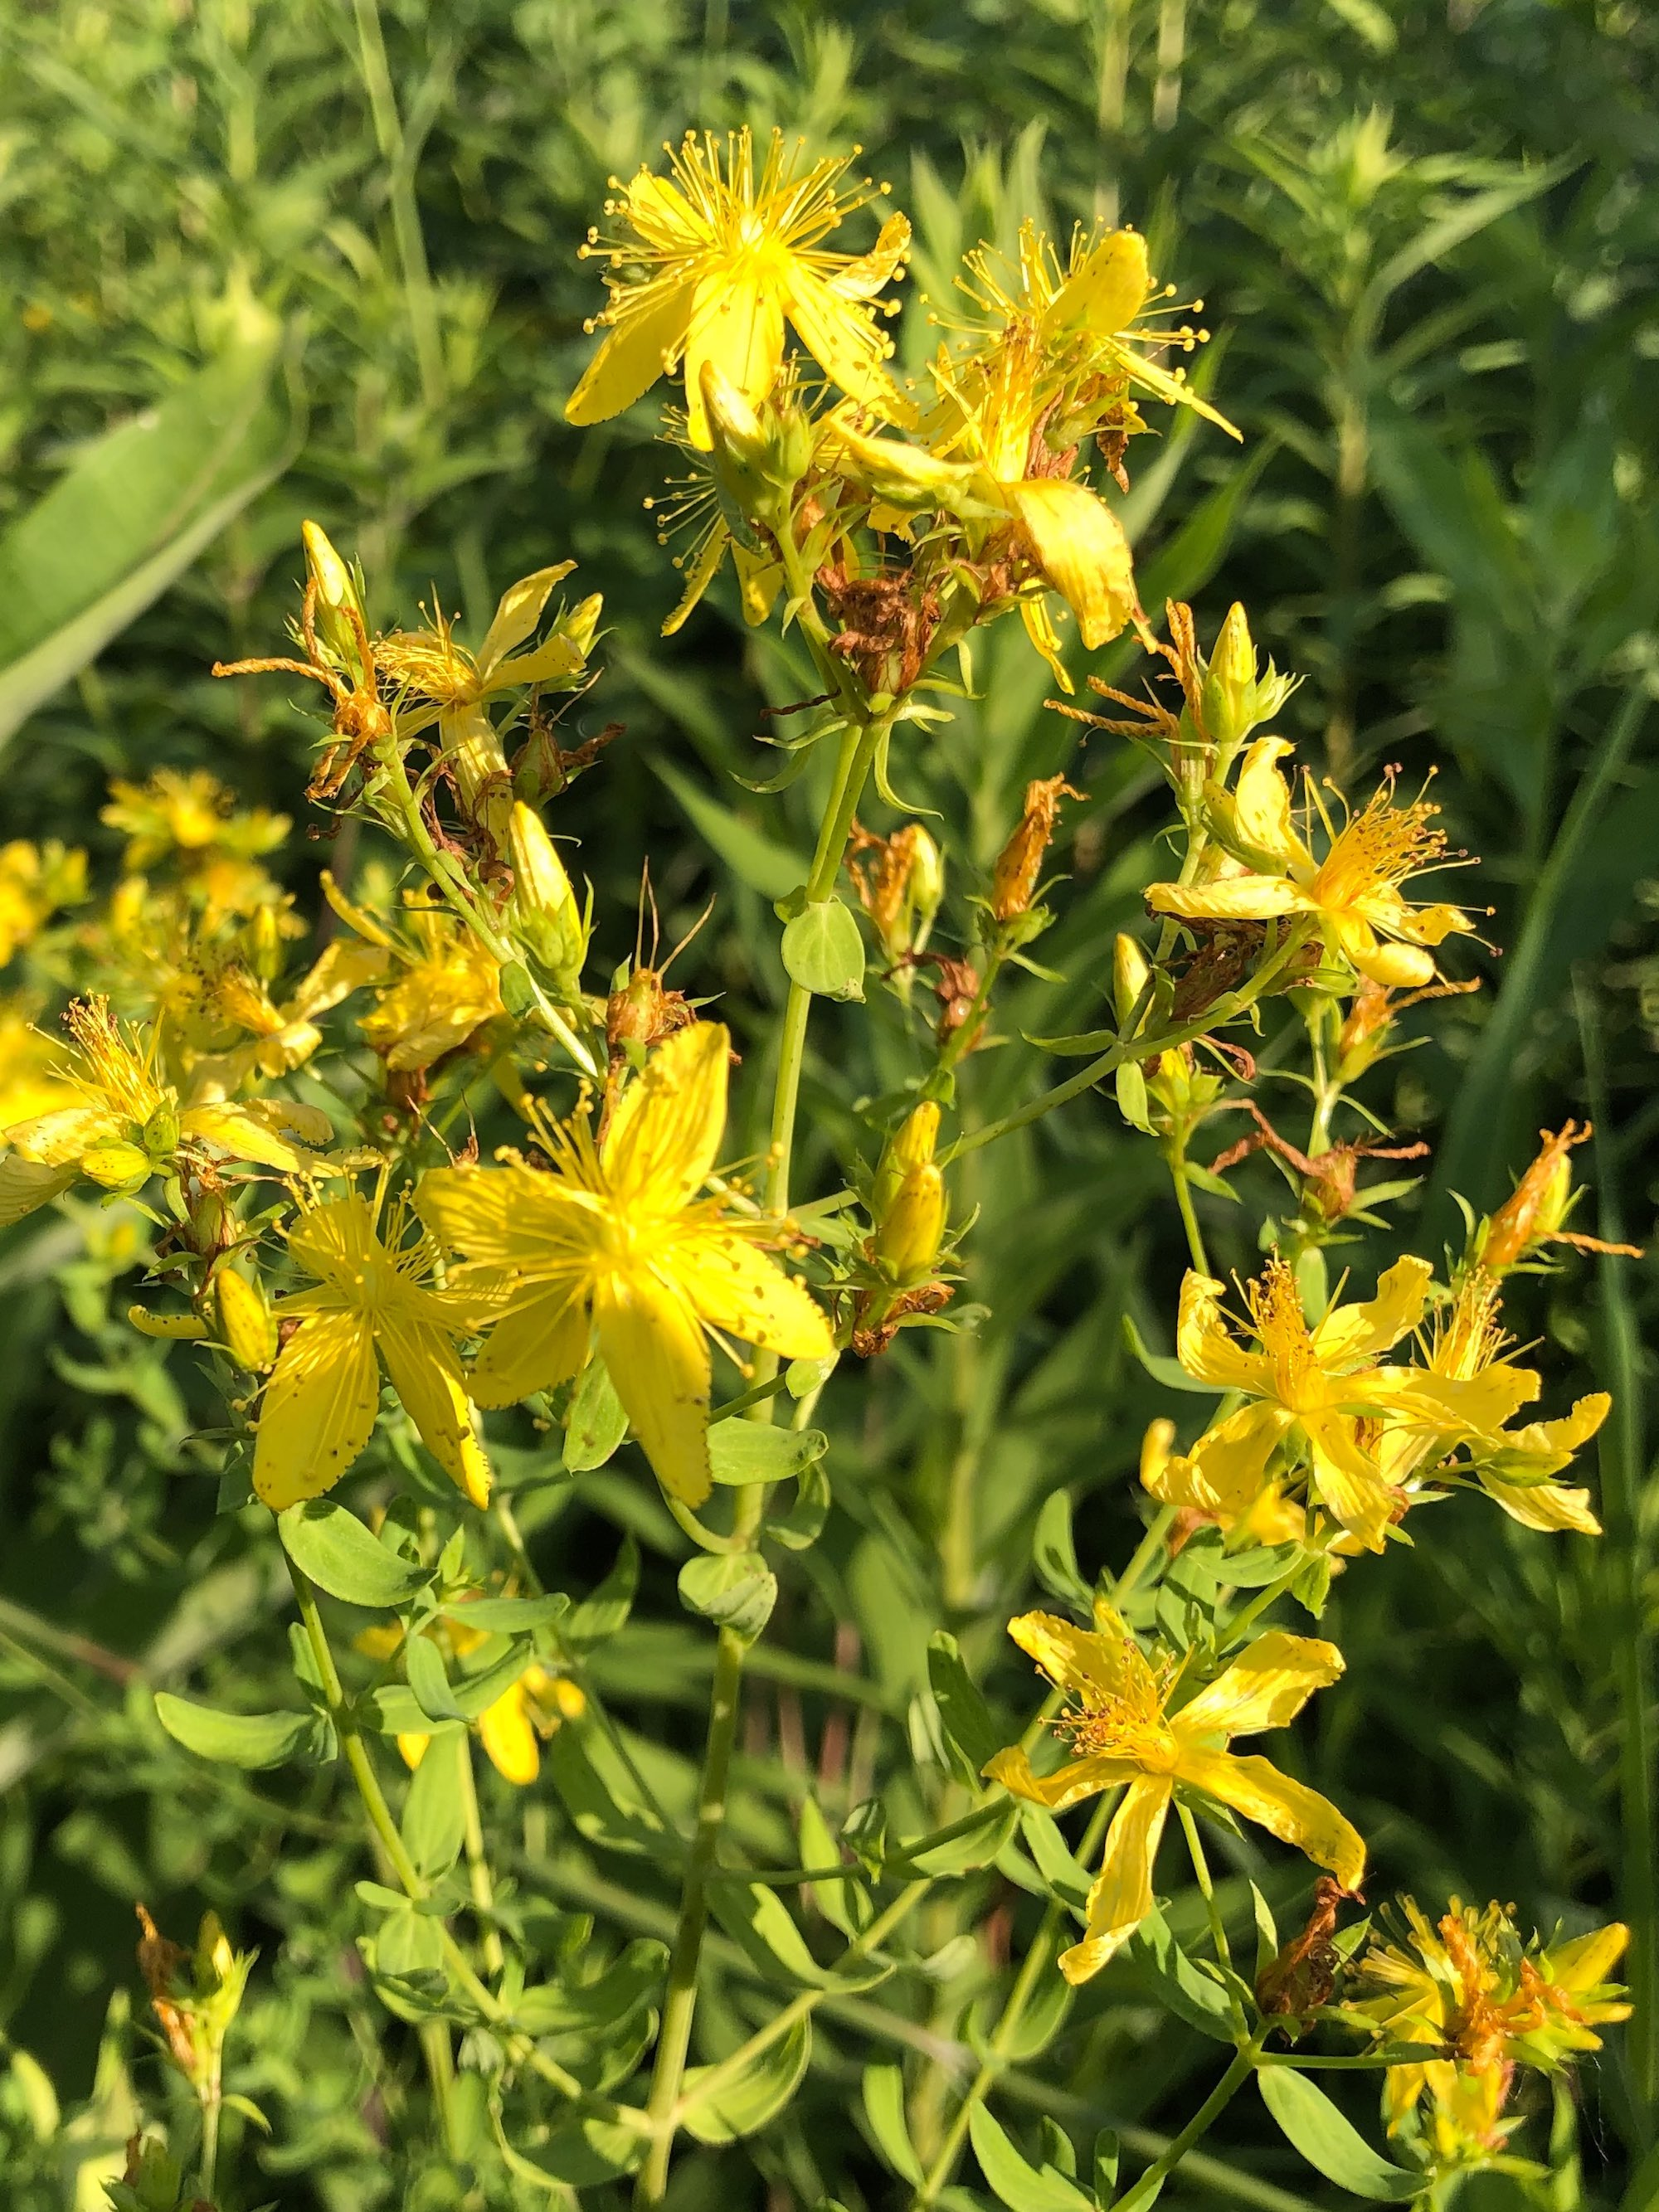 St. John's Wort on bank of Marion Dunn Pond on July 7, 2019.